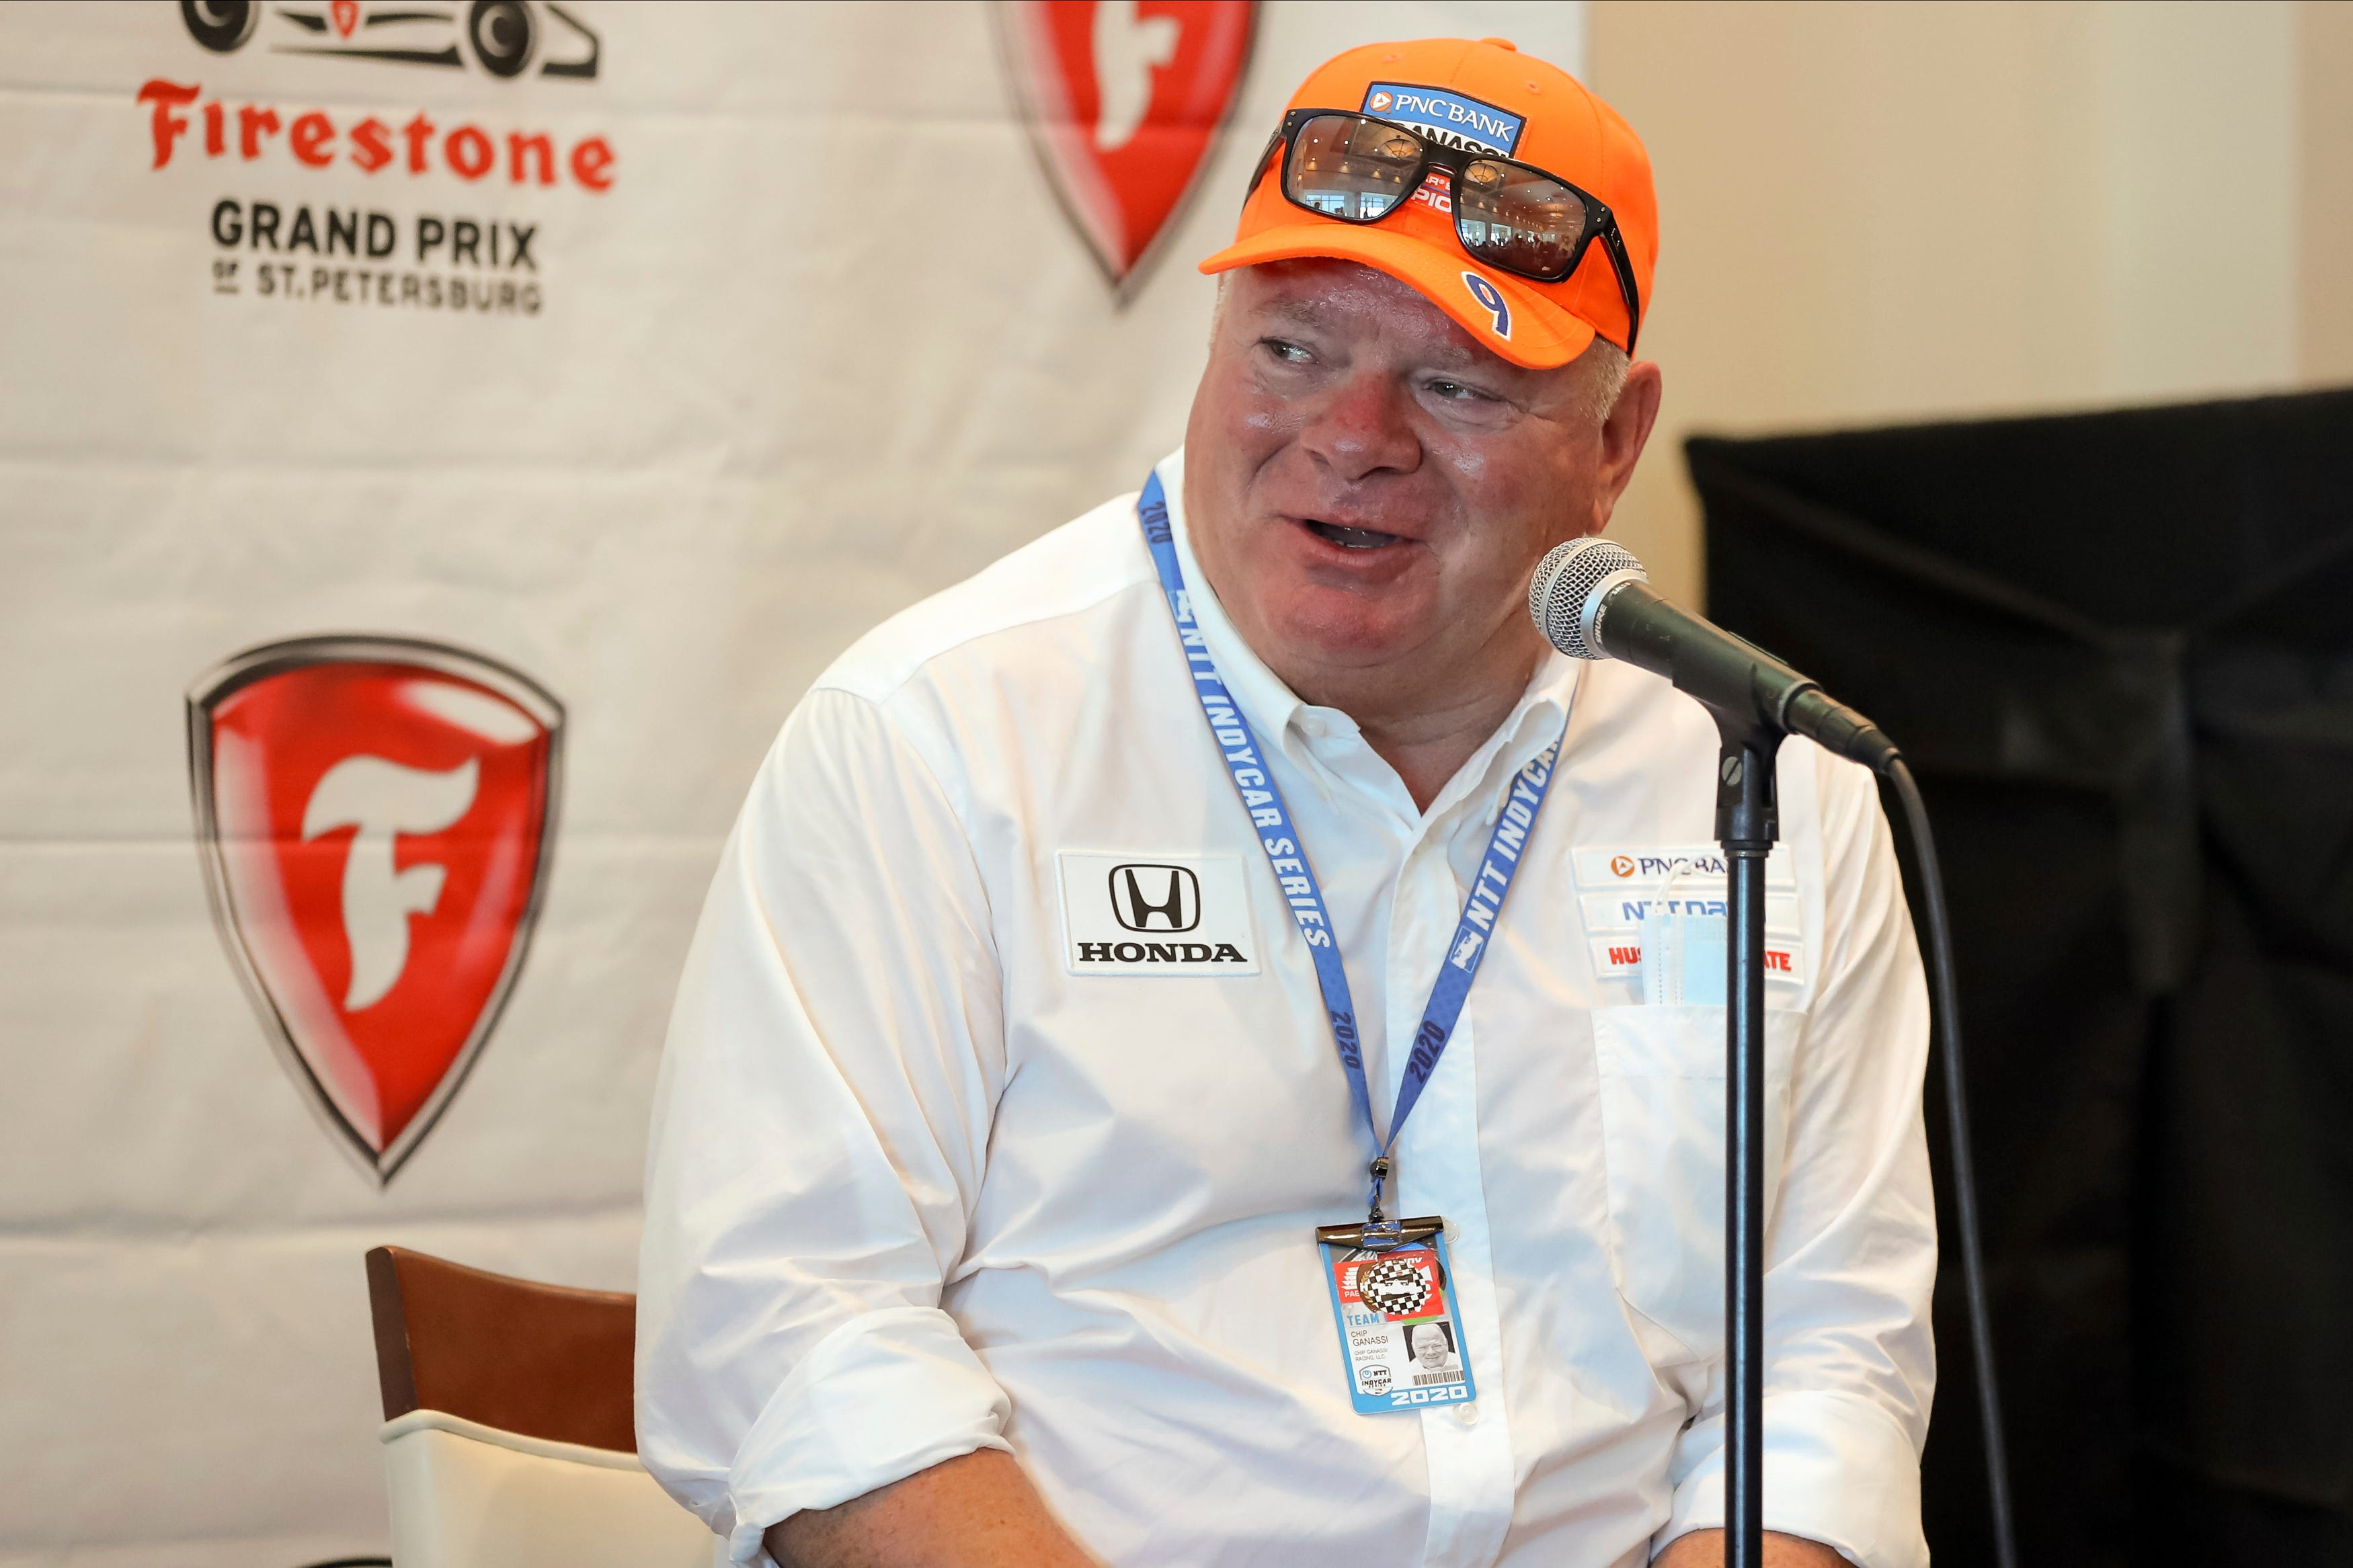 NASCAR owner Chip Ganassi suspended one race for violating COVID-19 protocols at Daytona